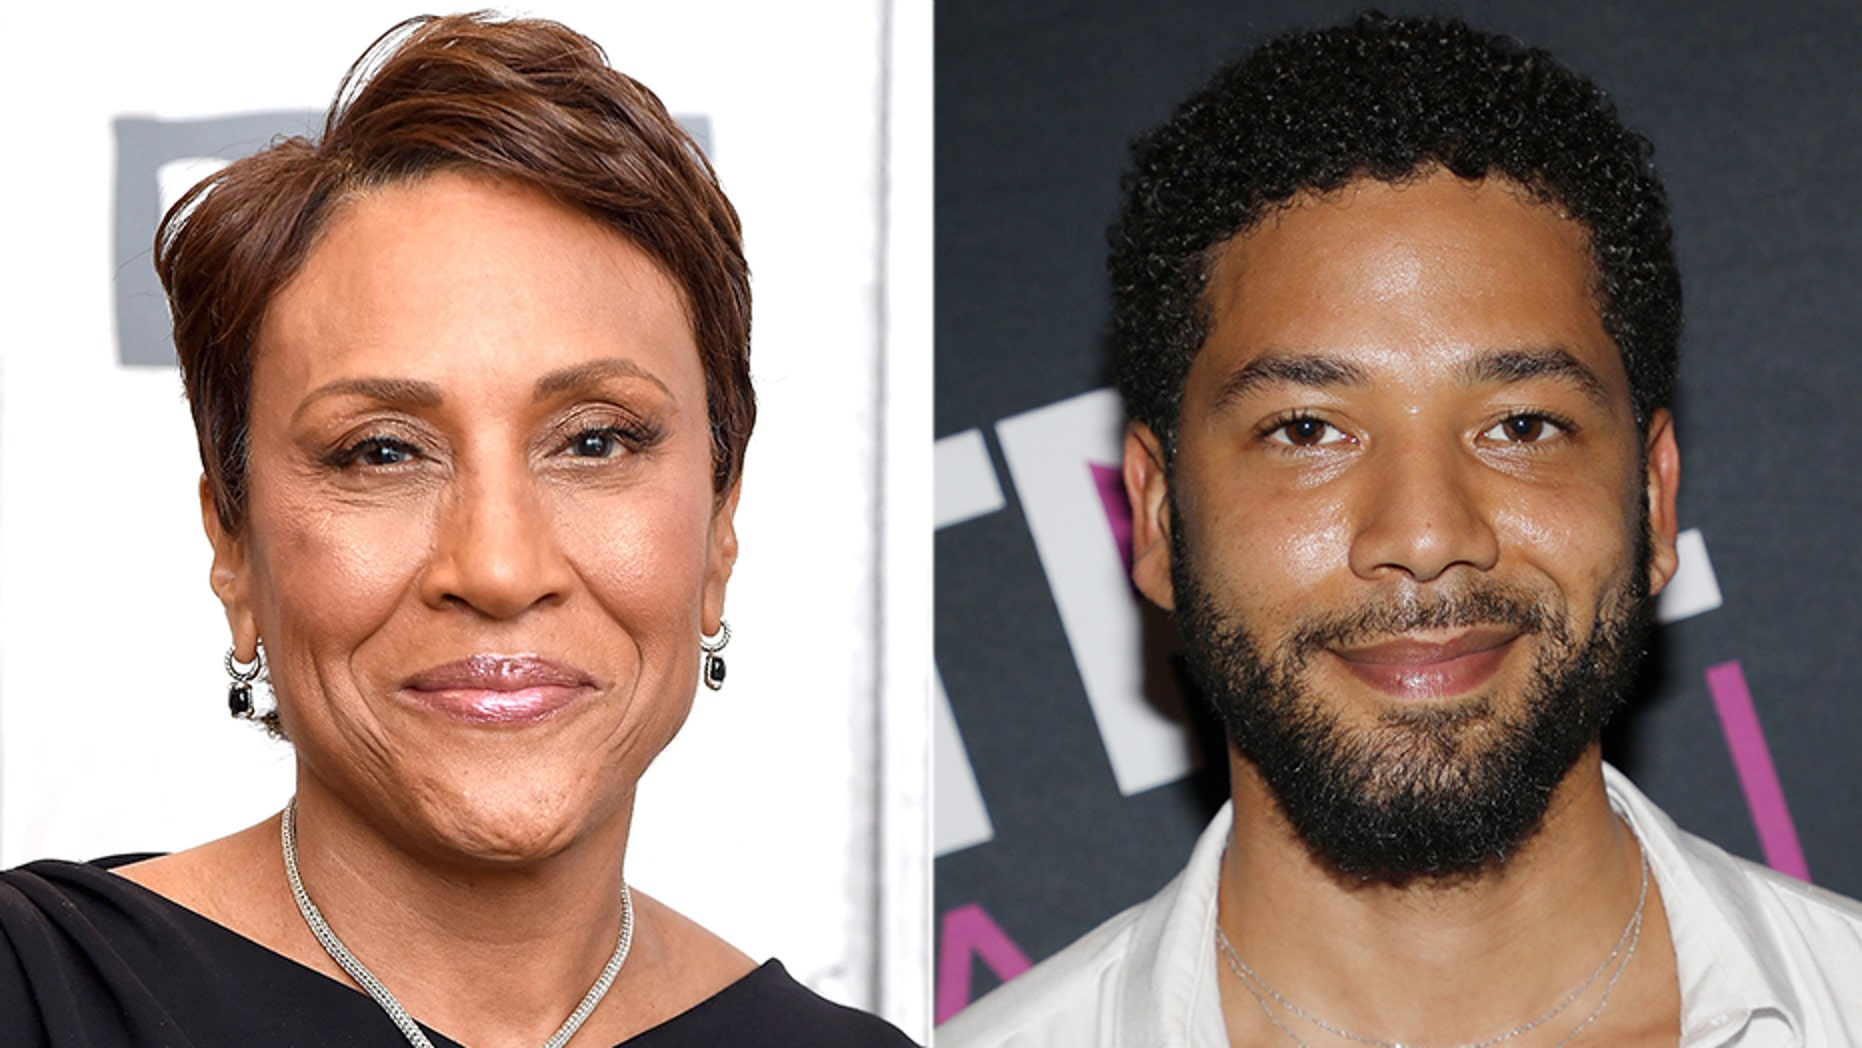 """""""Good Morning America"""" host Robin Roberts opened up on Monday about her sit-down interview with Jussie Smollett last month."""